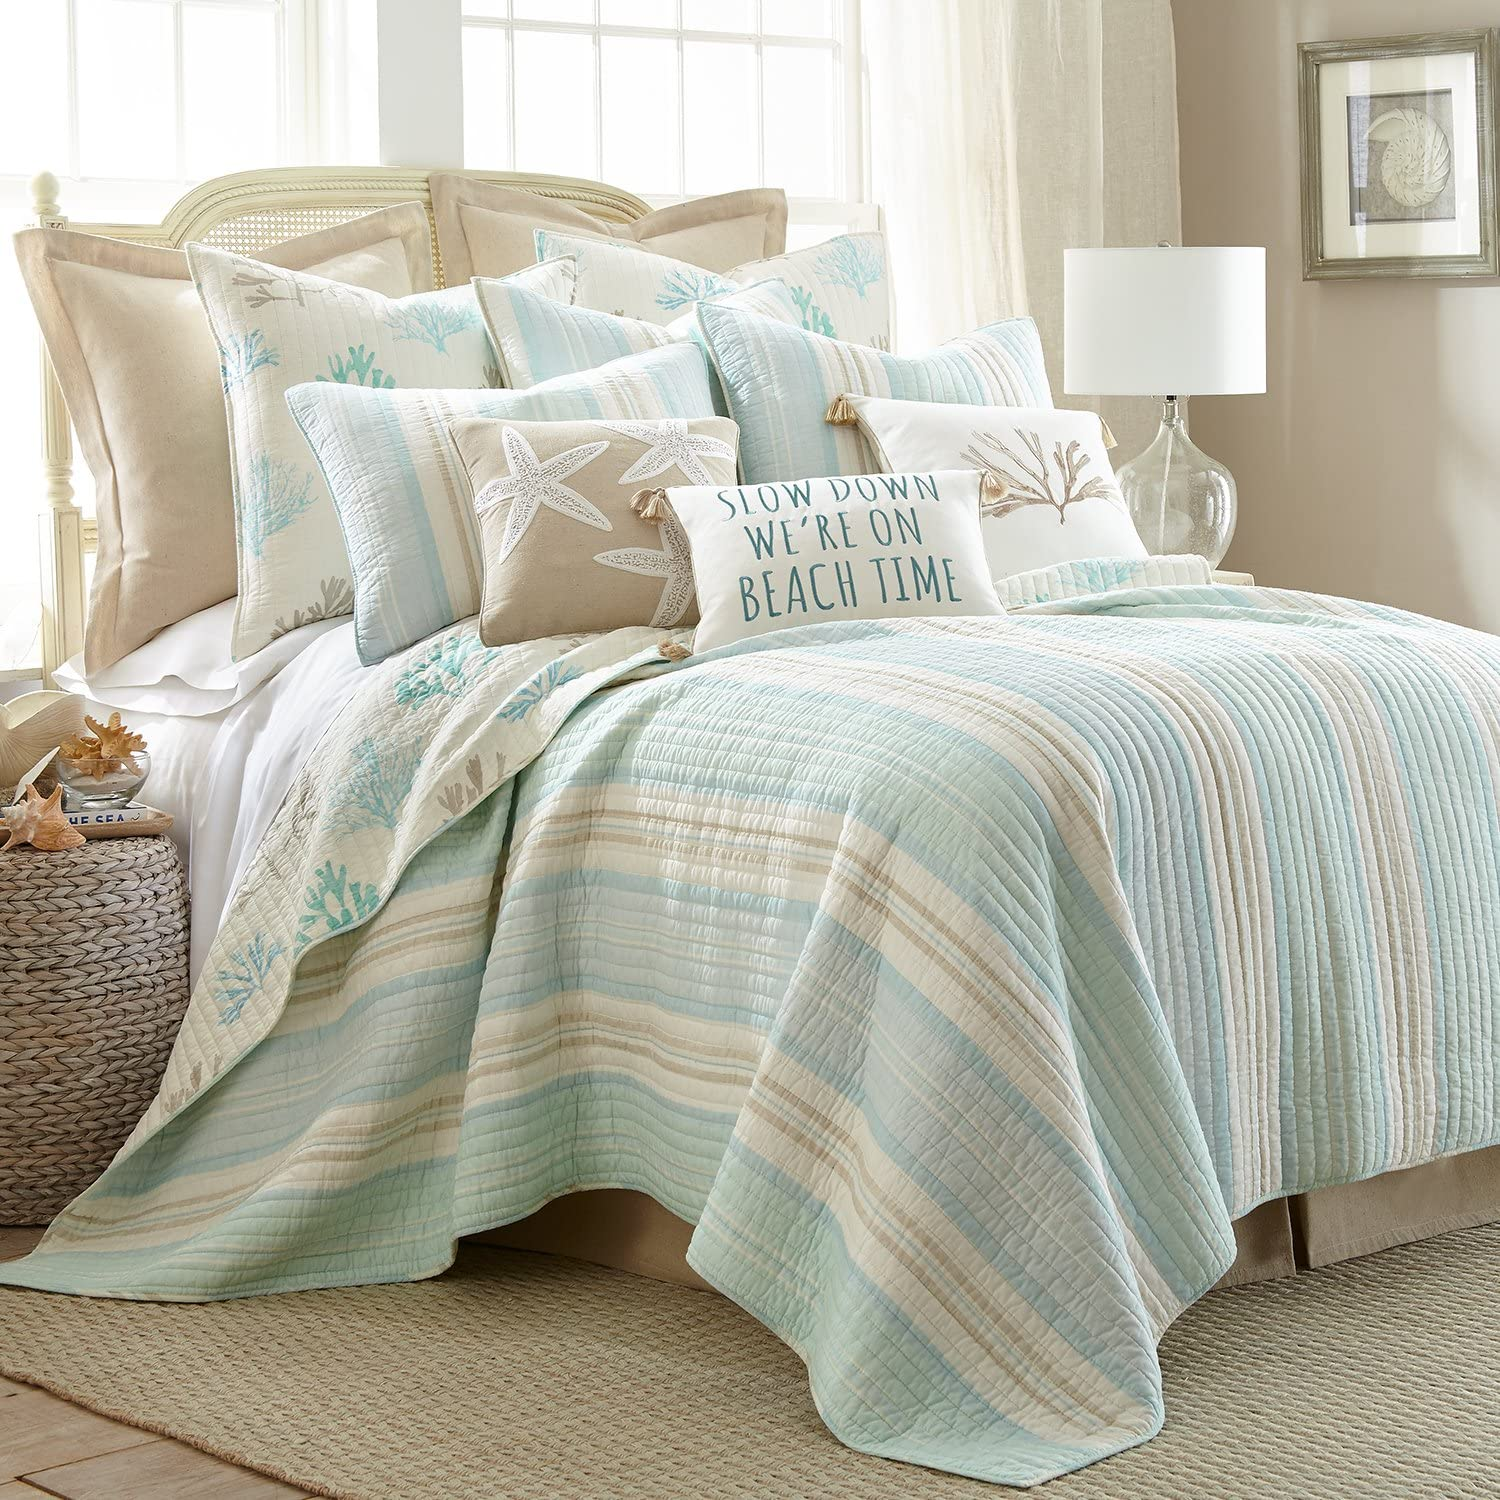 Levtex Stone Harbor King Set, White with Teal & Taupe, Cotton